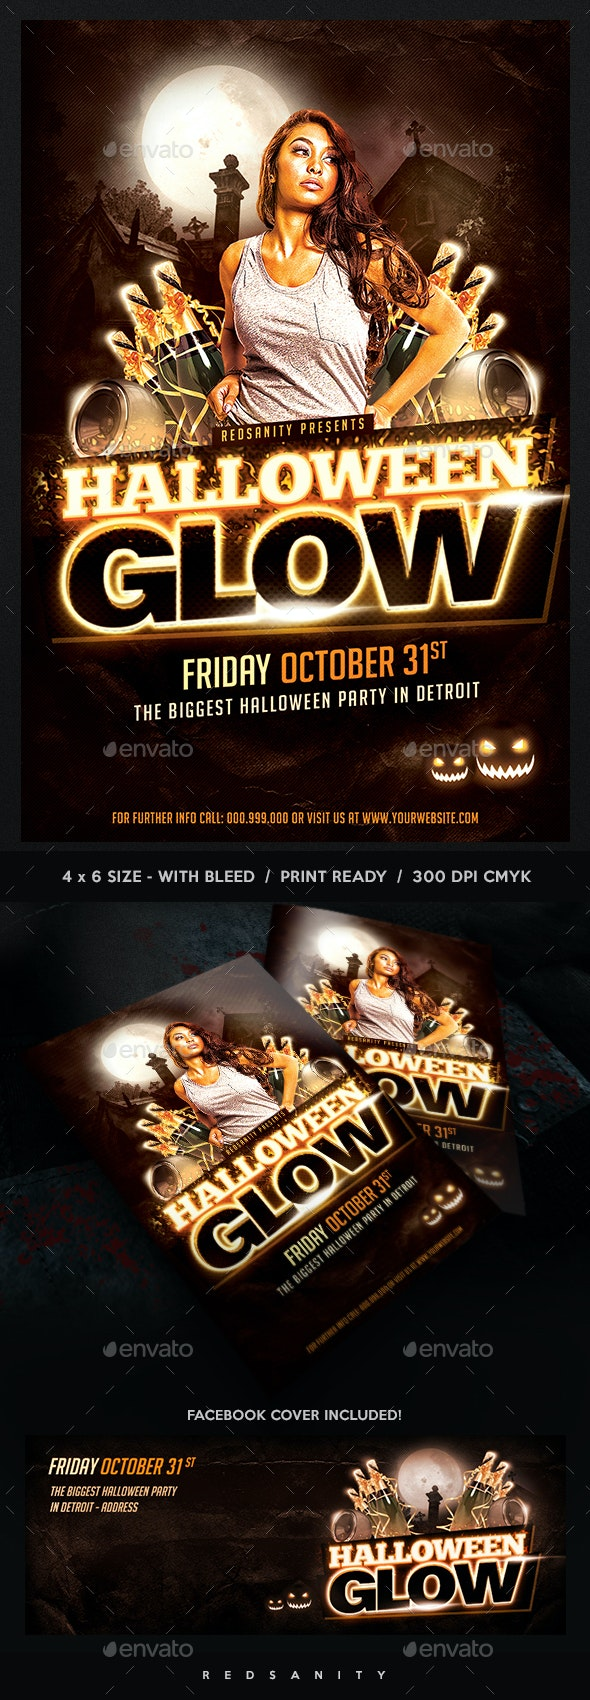 Halloween Glow Flyer Plus FB Cover - Events Flyers